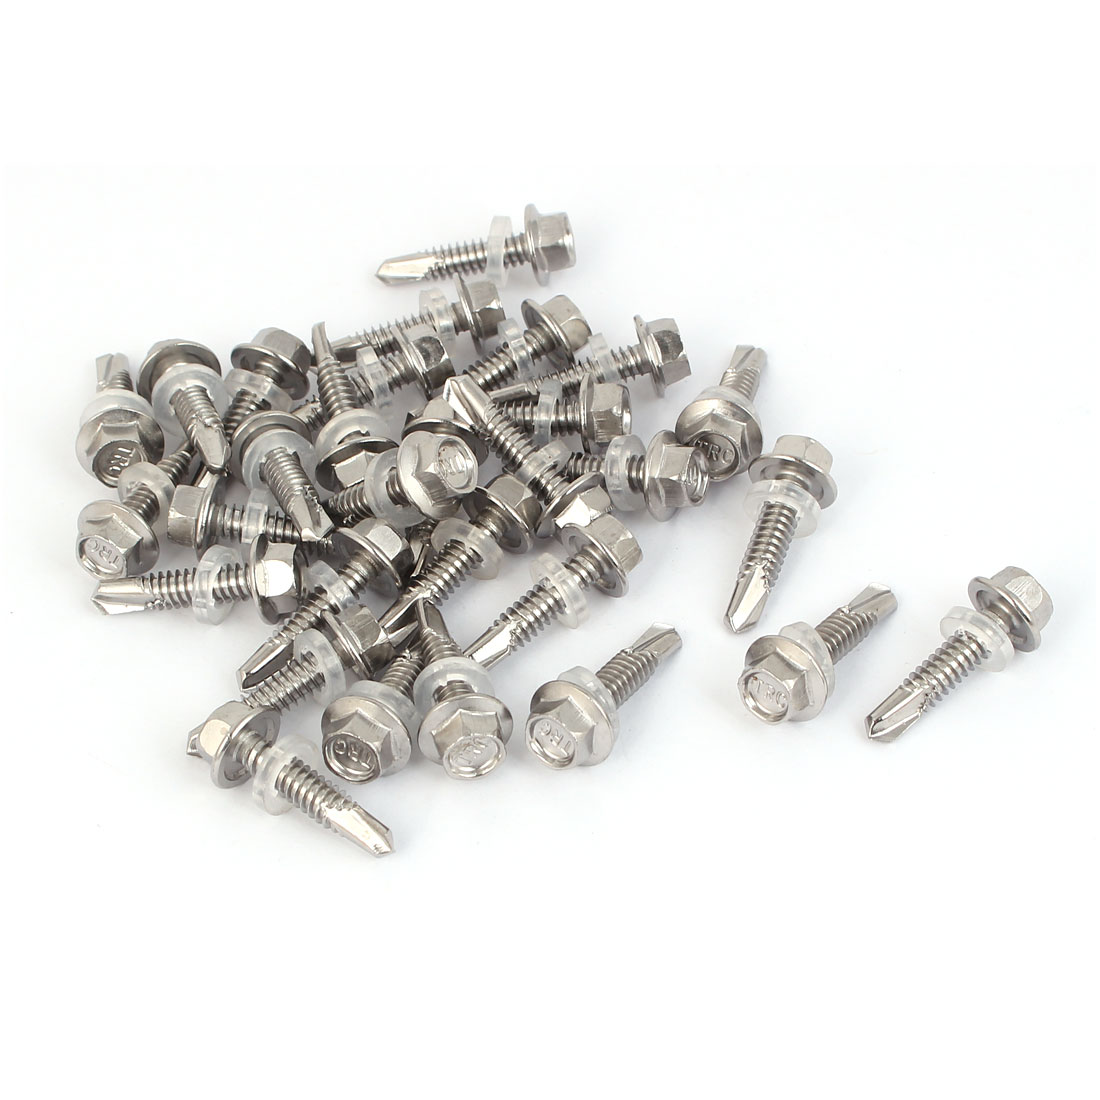 M5.5x25mm Thread 410 Stainless Steel Hex Head Self Drilling Screw w Washer 30pcs